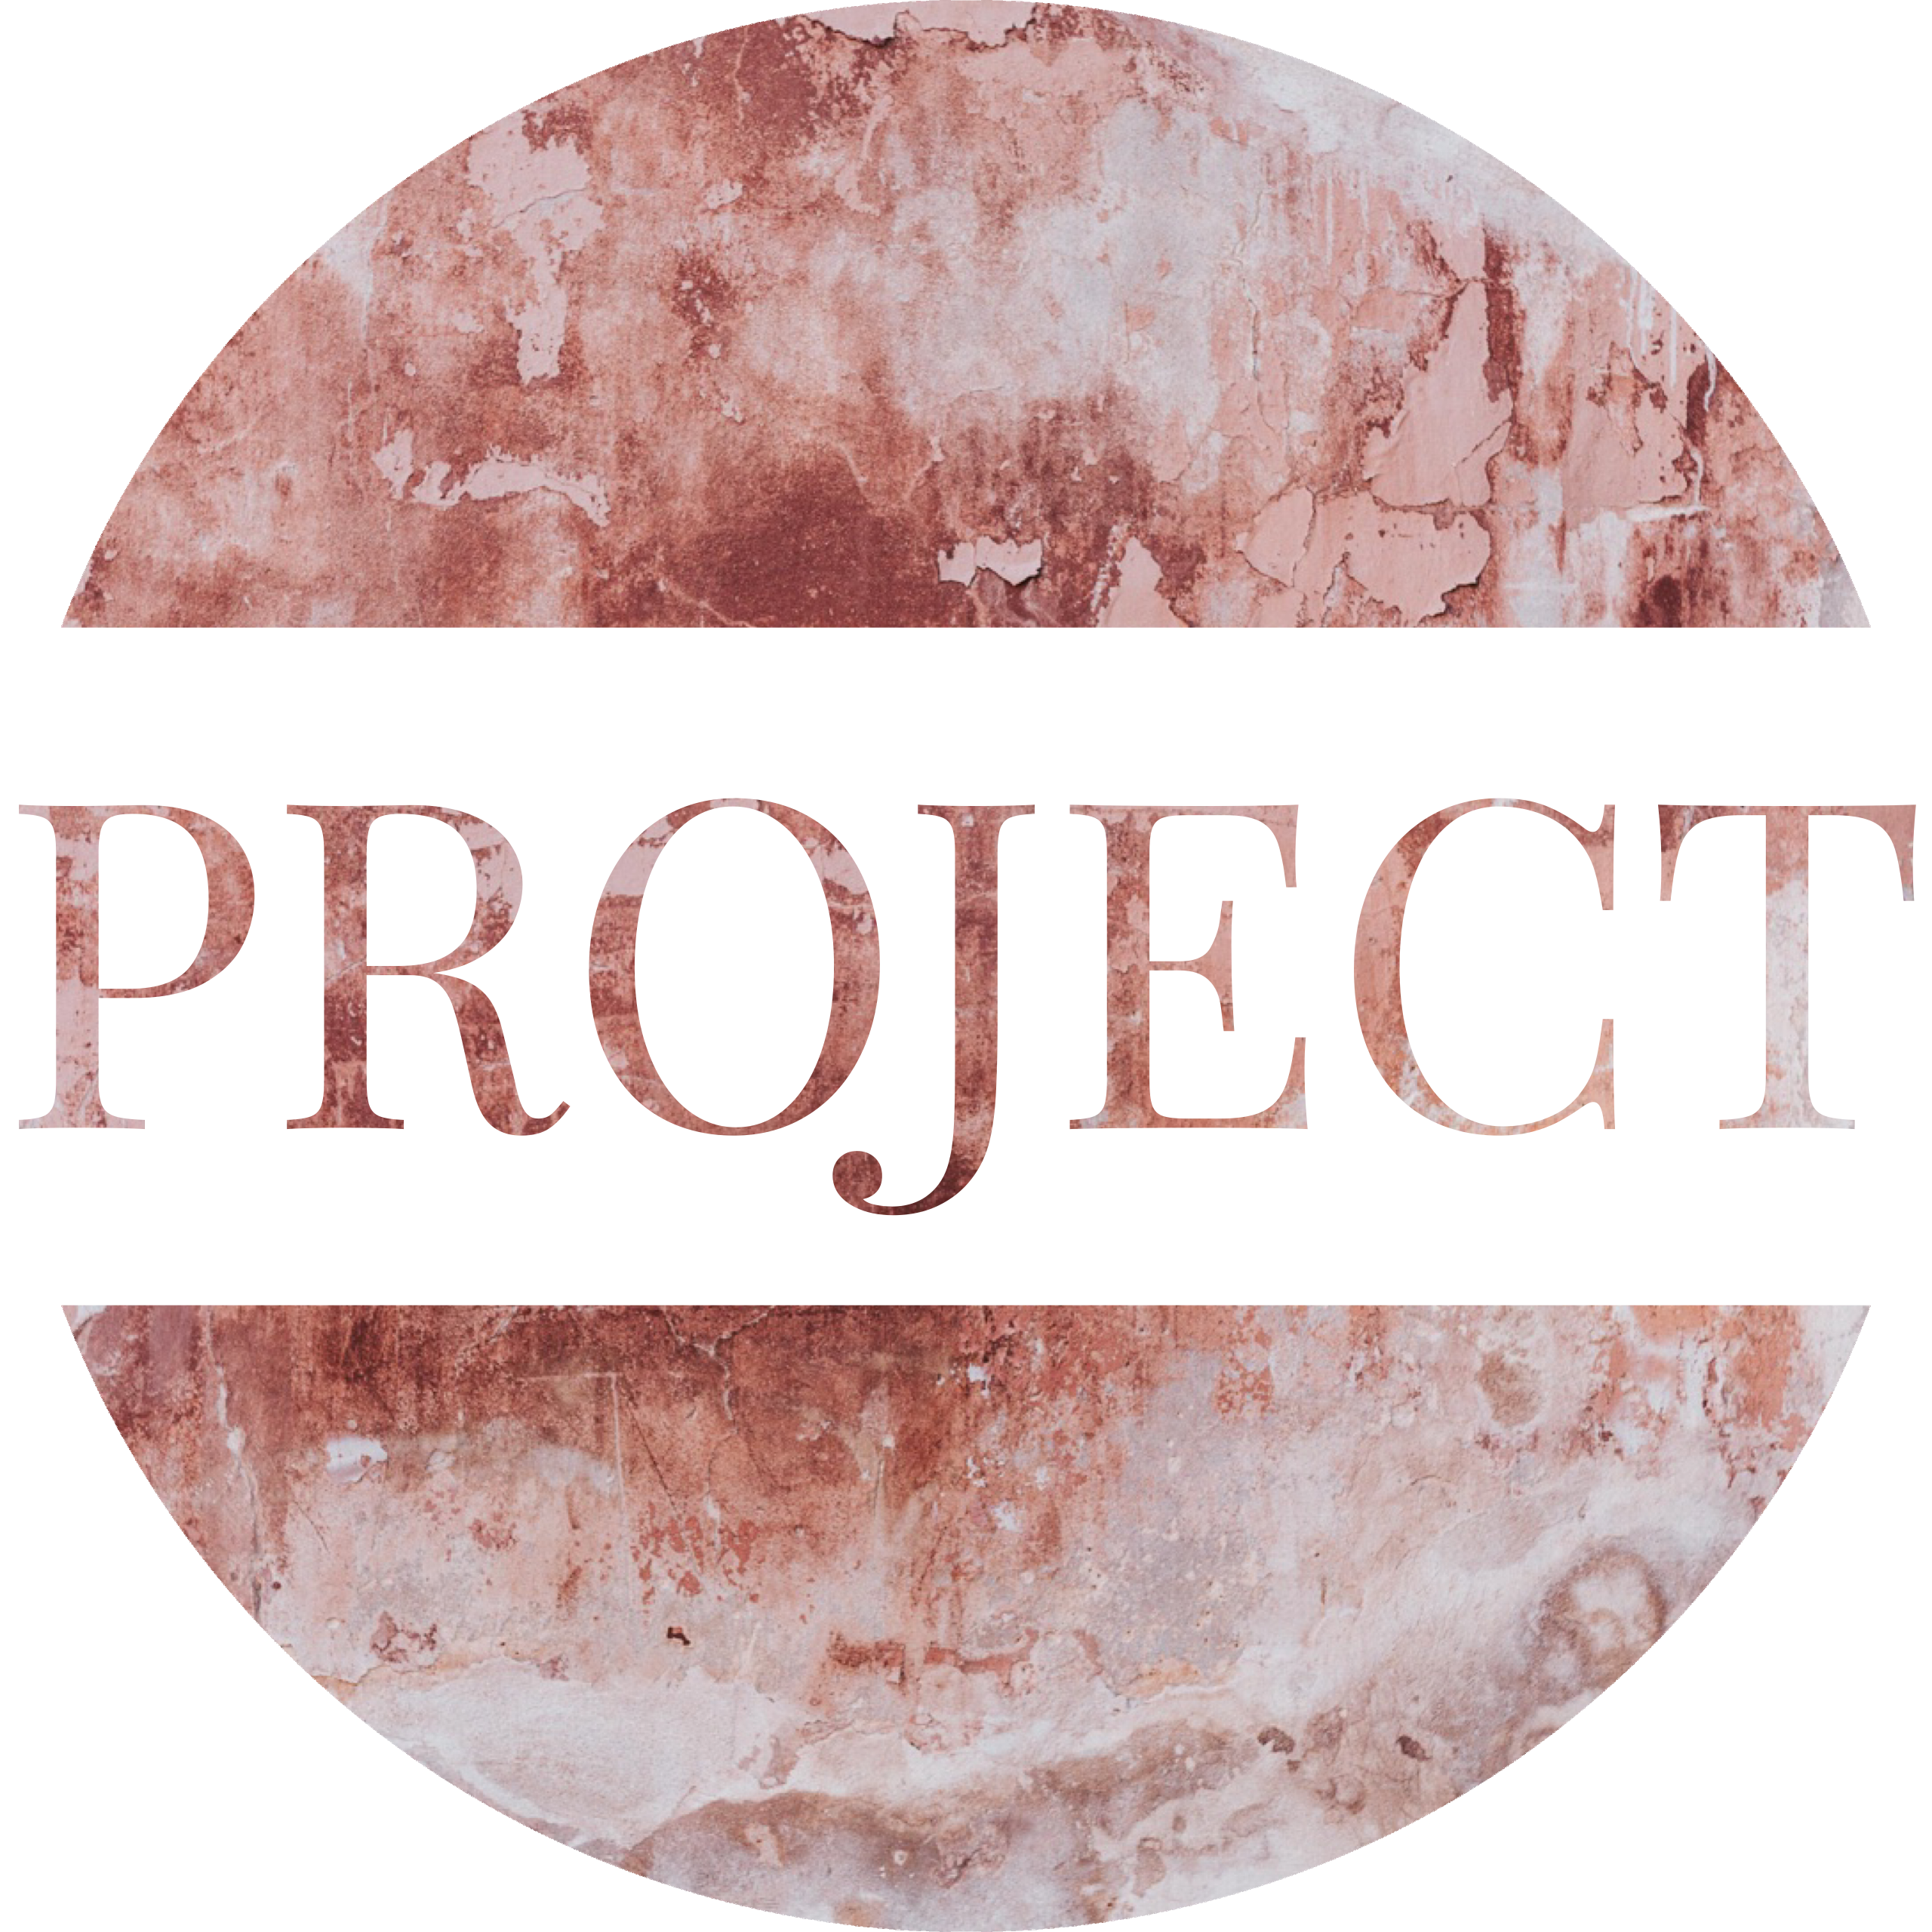 Round image in a brown and grey marble pattern with a white banner running through the center with the word PROJECT in the marble pattern.